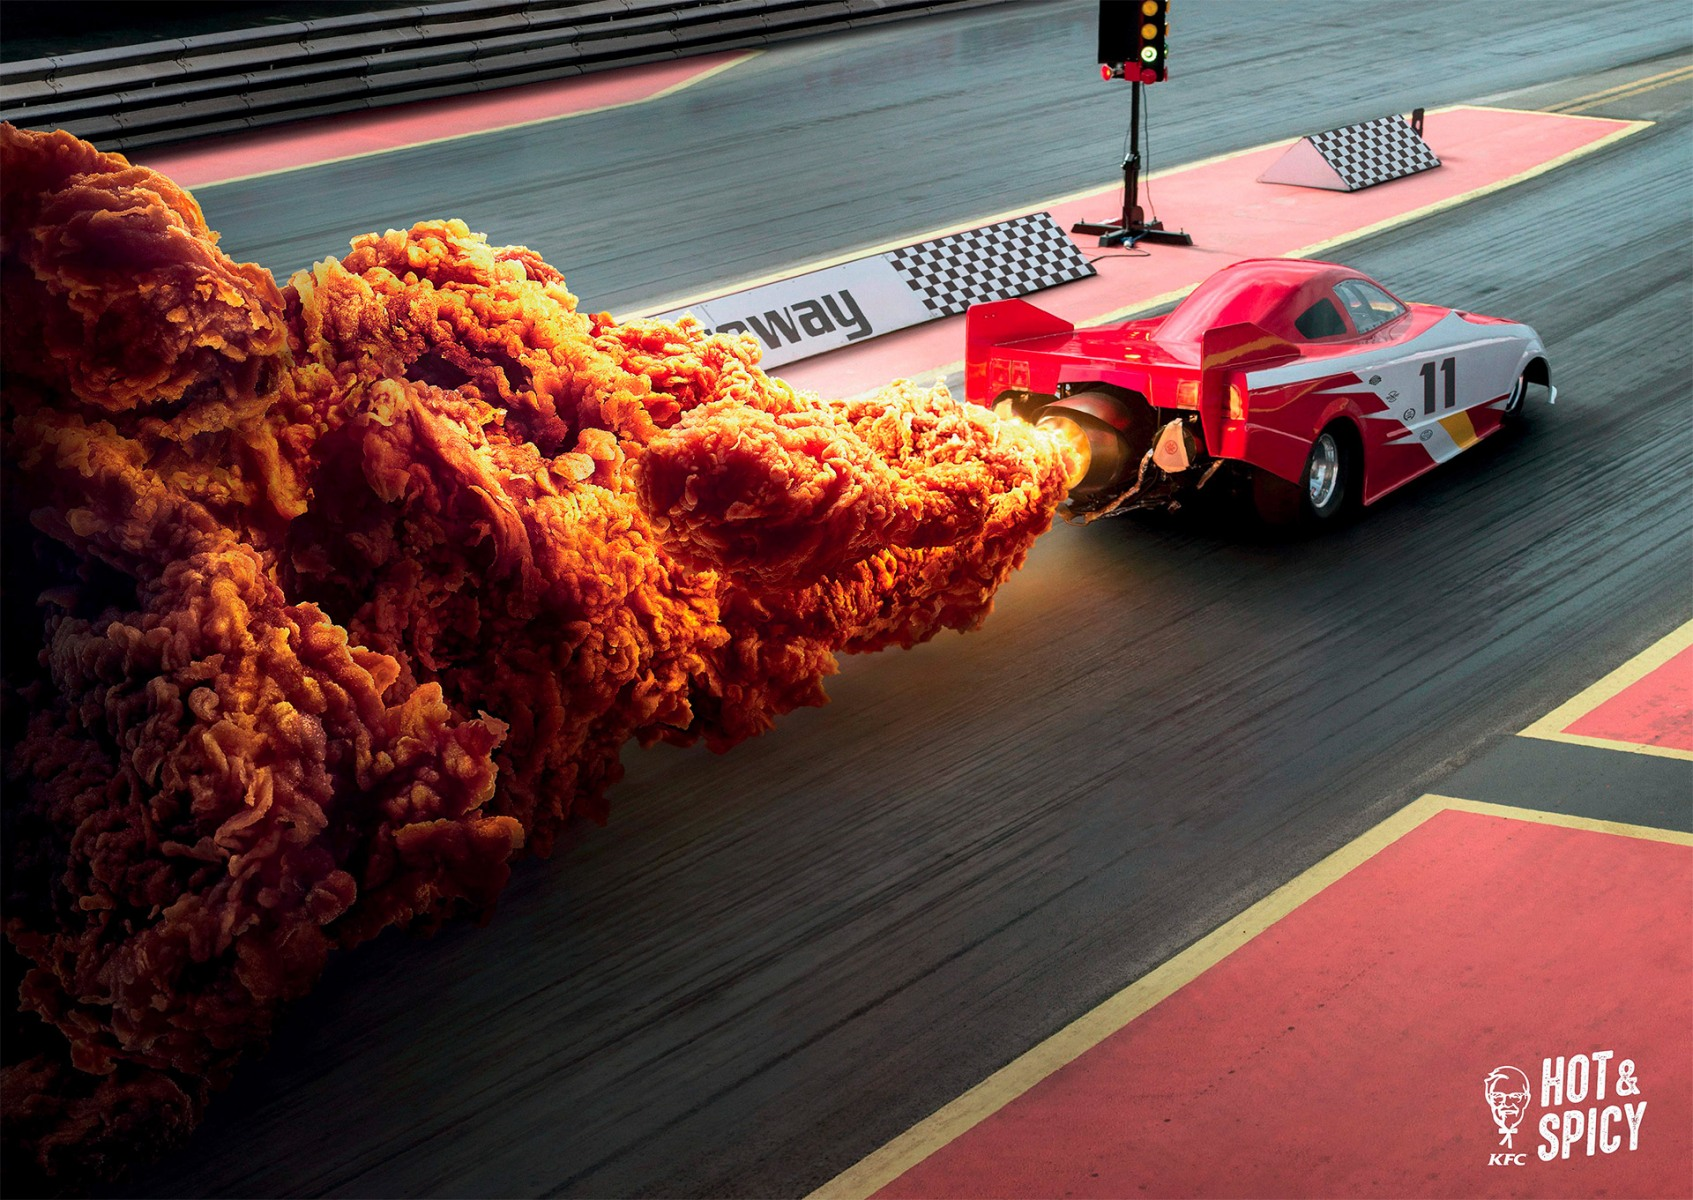 KFC-Hot-Spicy-Campaign-by-Ogilvy-Daily-design-inspiration-for-creatives-Inspiration-Grid-9